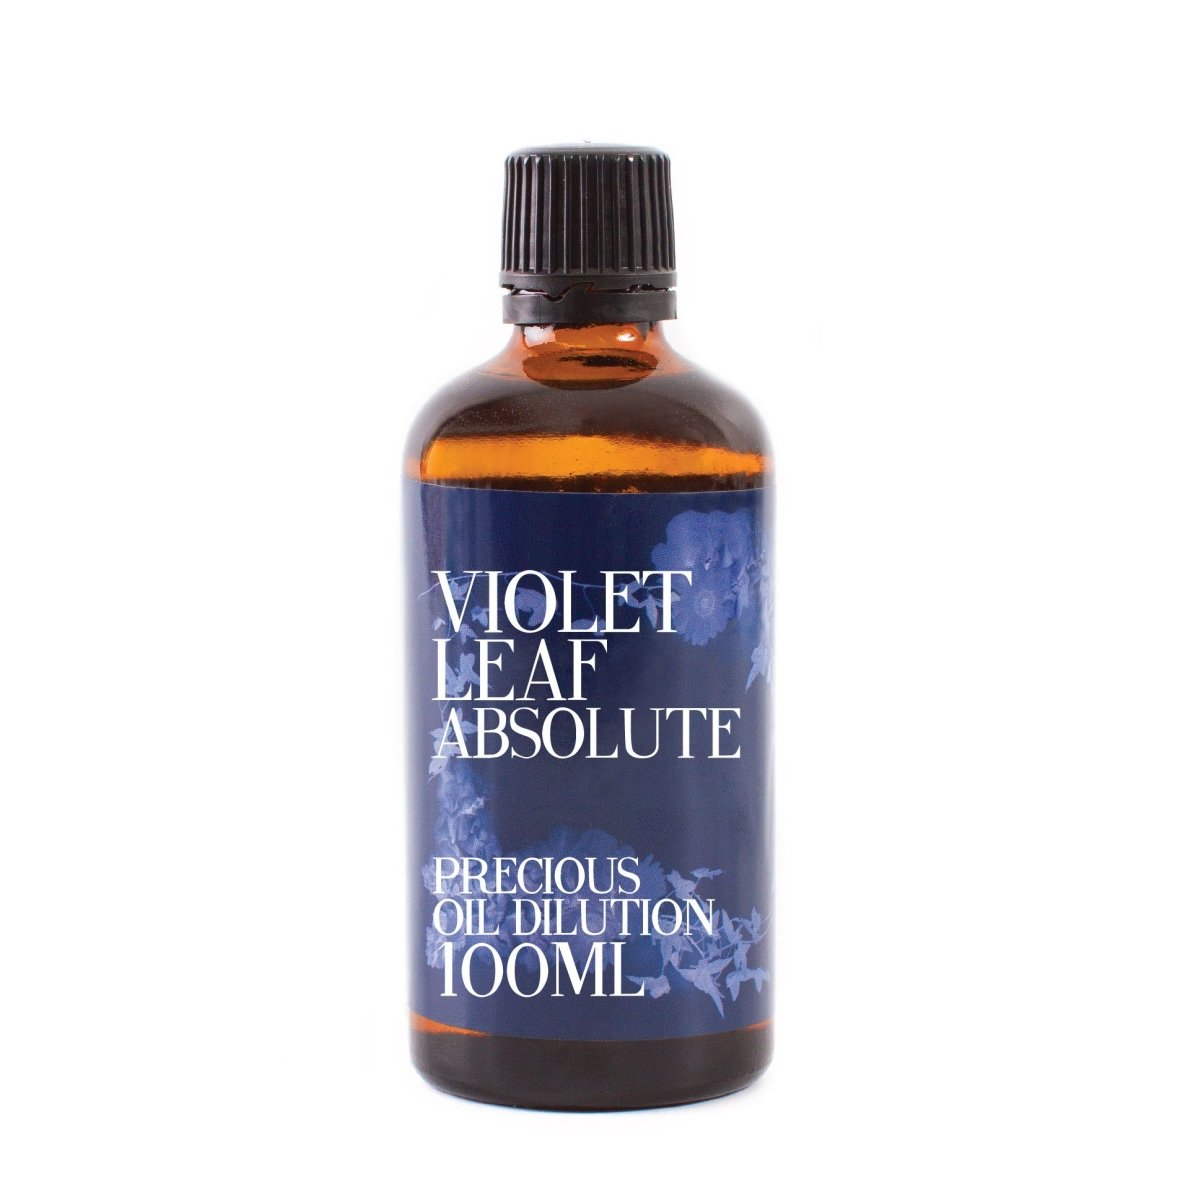 Violet Leaf Absolute Oil Dilution - Mystic Moments UK